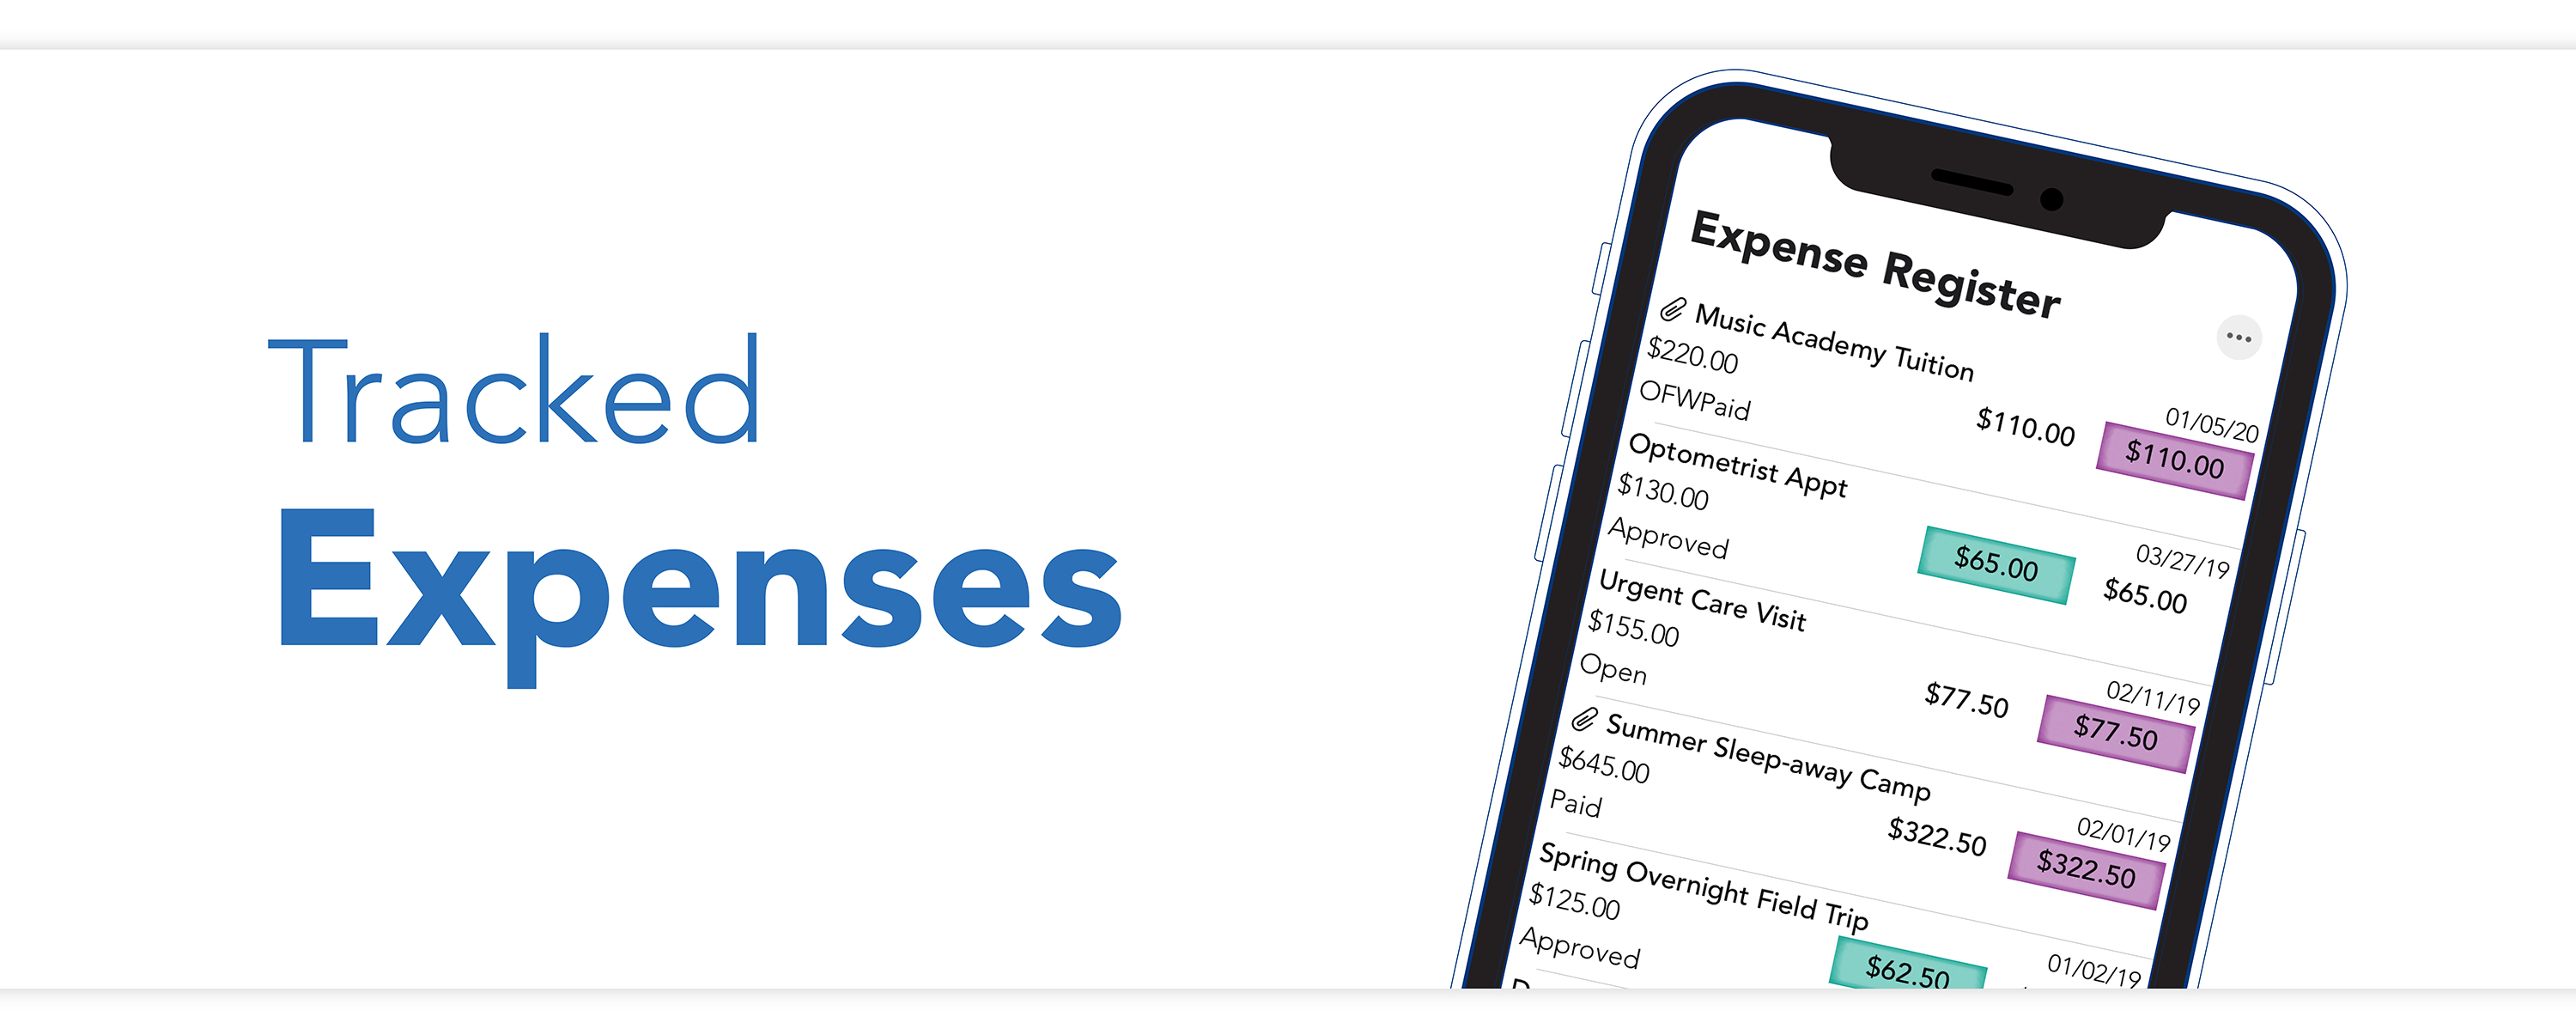 Track expenses, send payments, upload receipts in the expense register on the OFW co-parenting app.